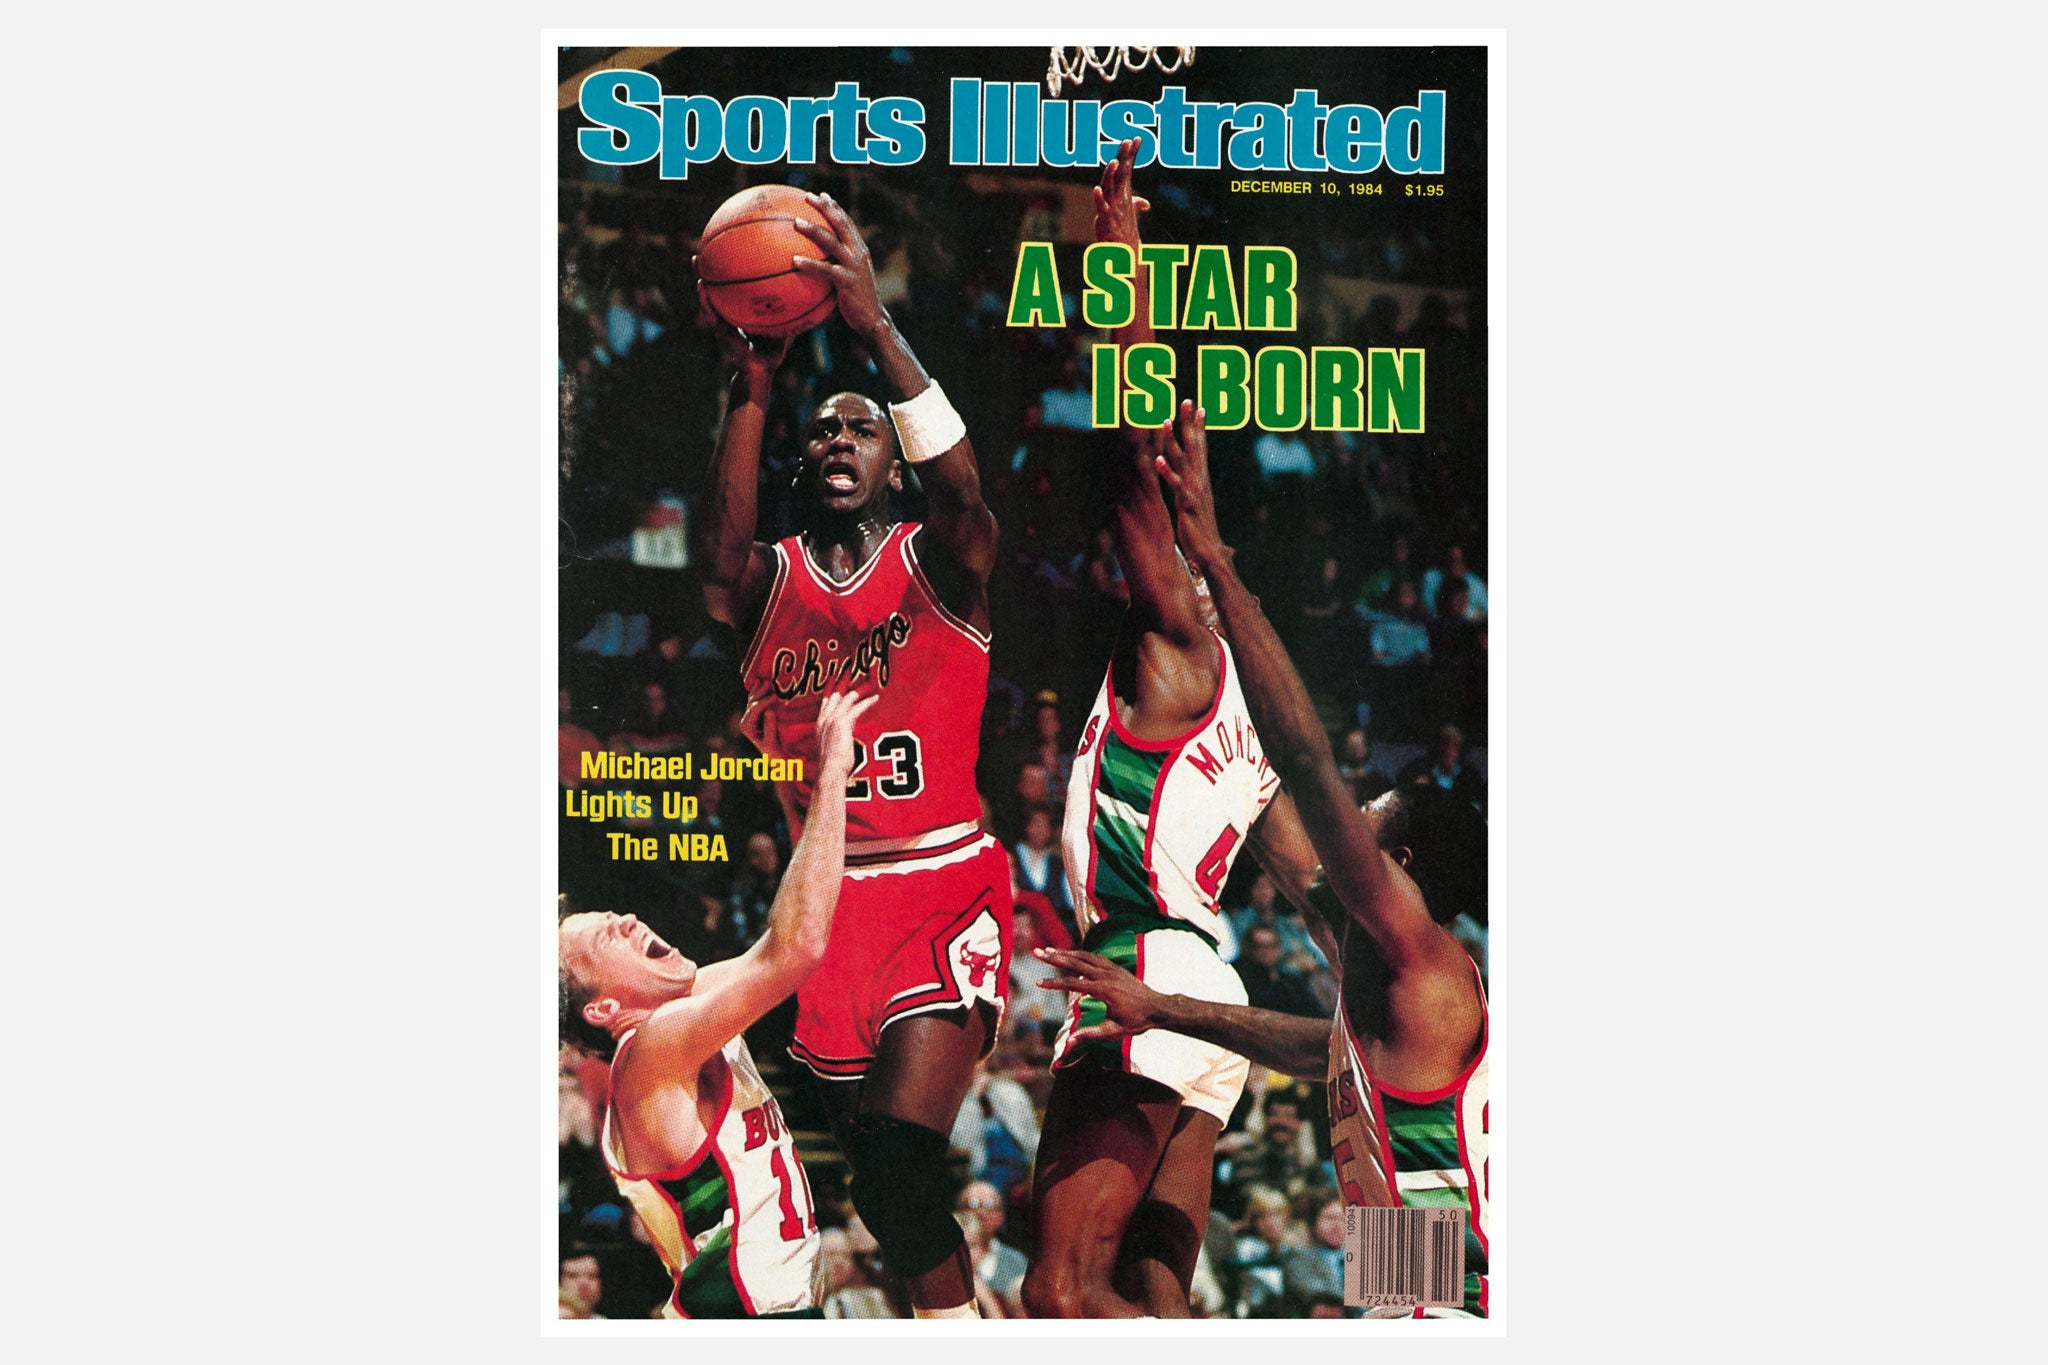 The Air Jordan 1 High OG A Star Is Born Celebrates One Of Mikes First Appearances On Front Page Namely 1984 Sports Illustrated Issue With